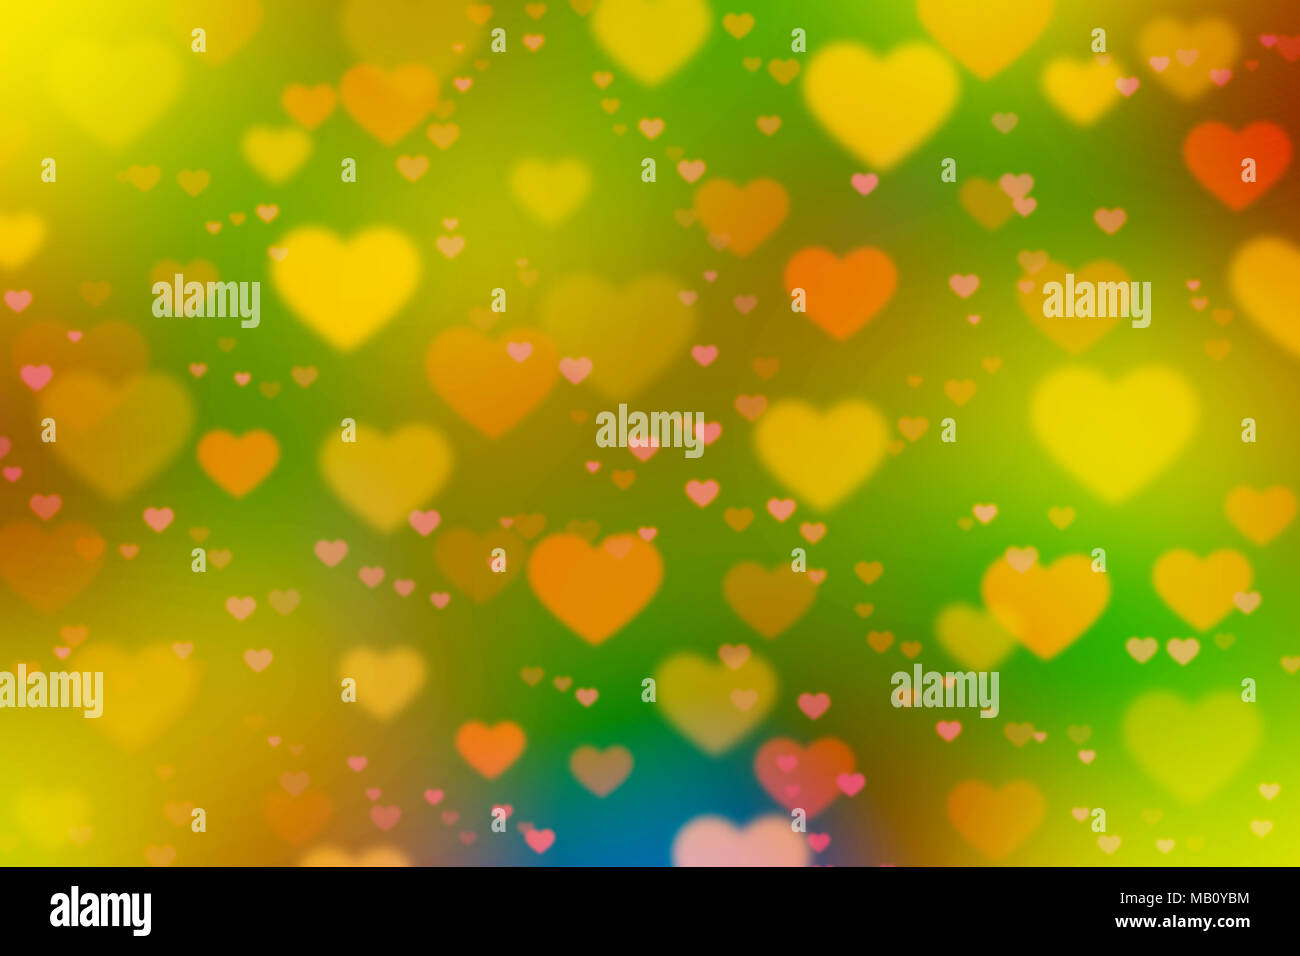 Blurred surface with bright color background and heart symbol image ...